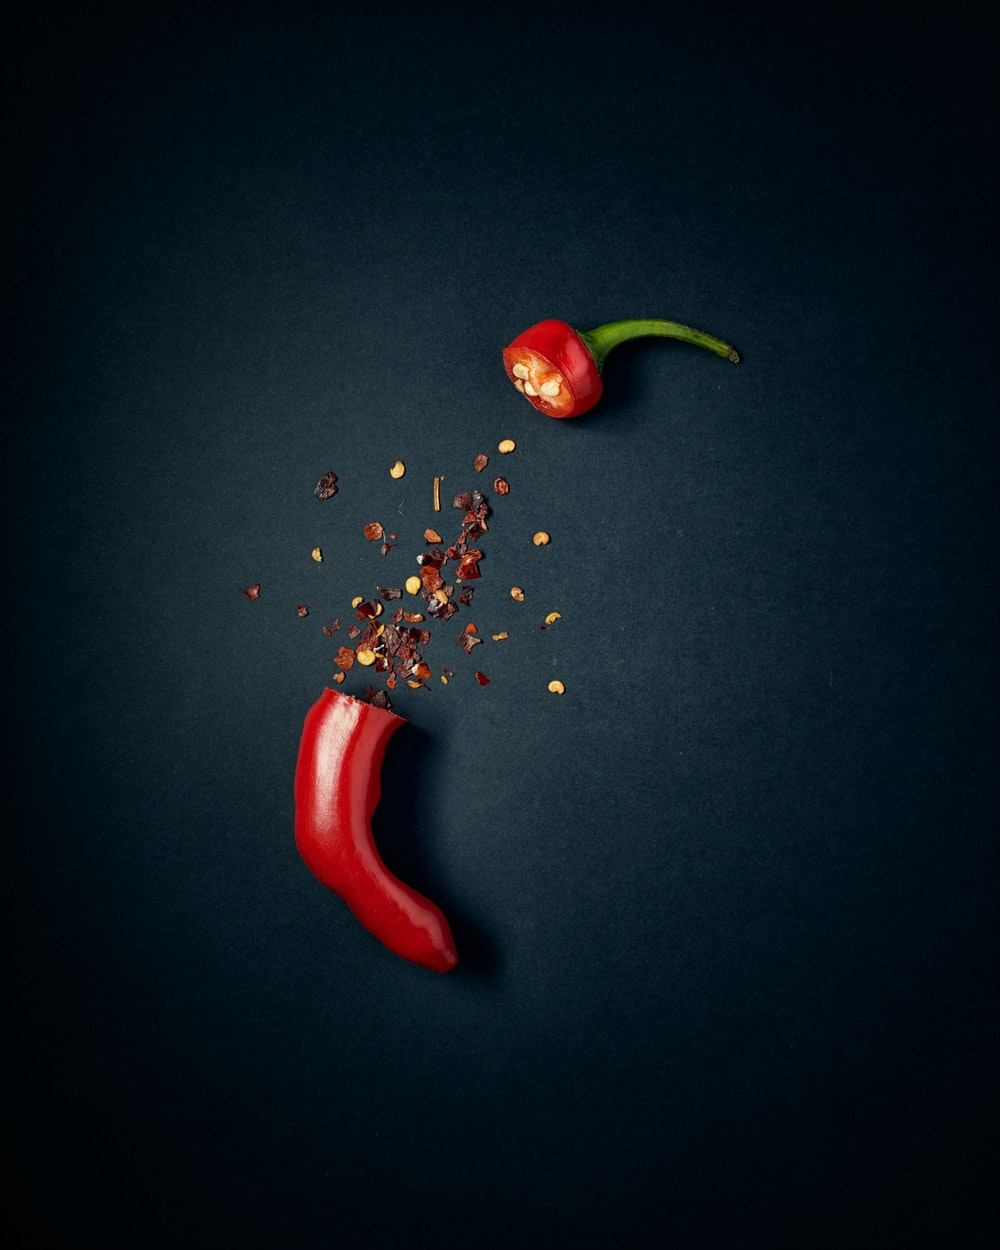 red chili pepper with green leaves